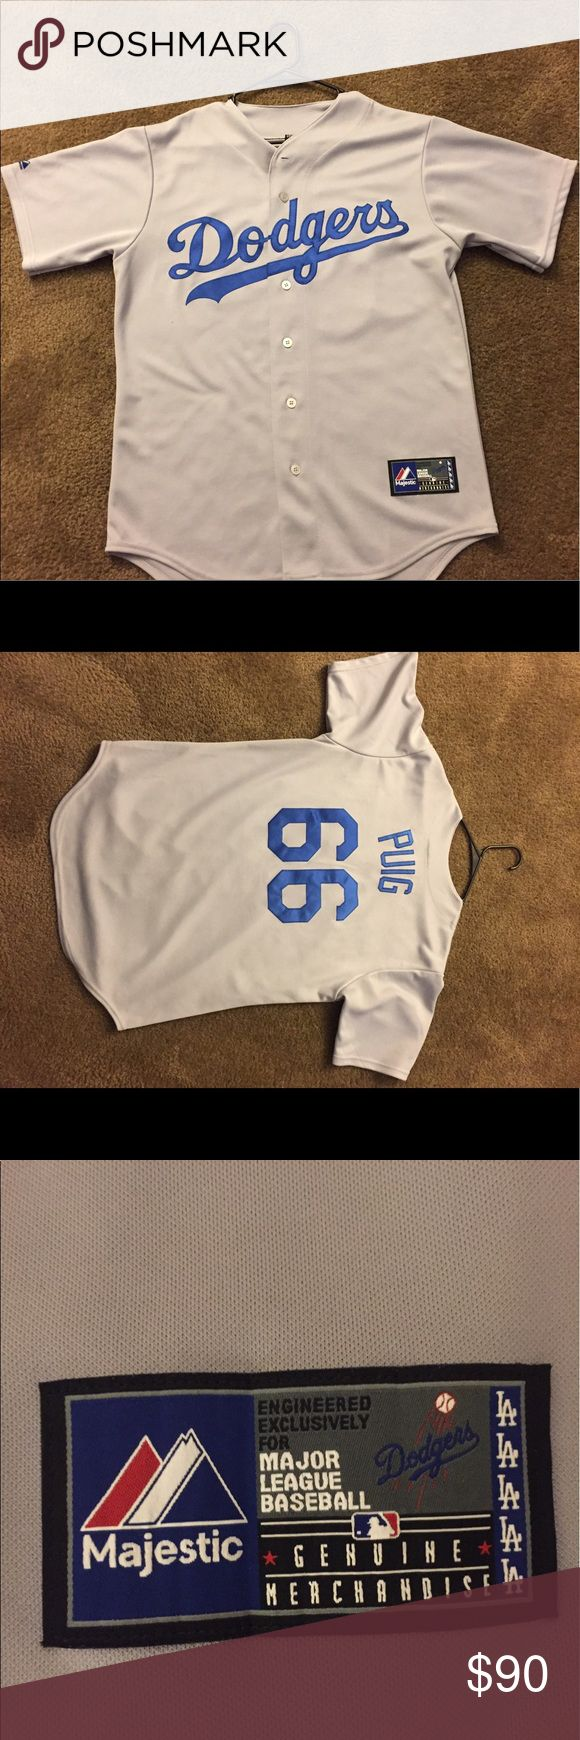 Great Condition Official Puig Dodger Jersey Puig Jersey Men's Medium Dodger Tops Button Down Shirts